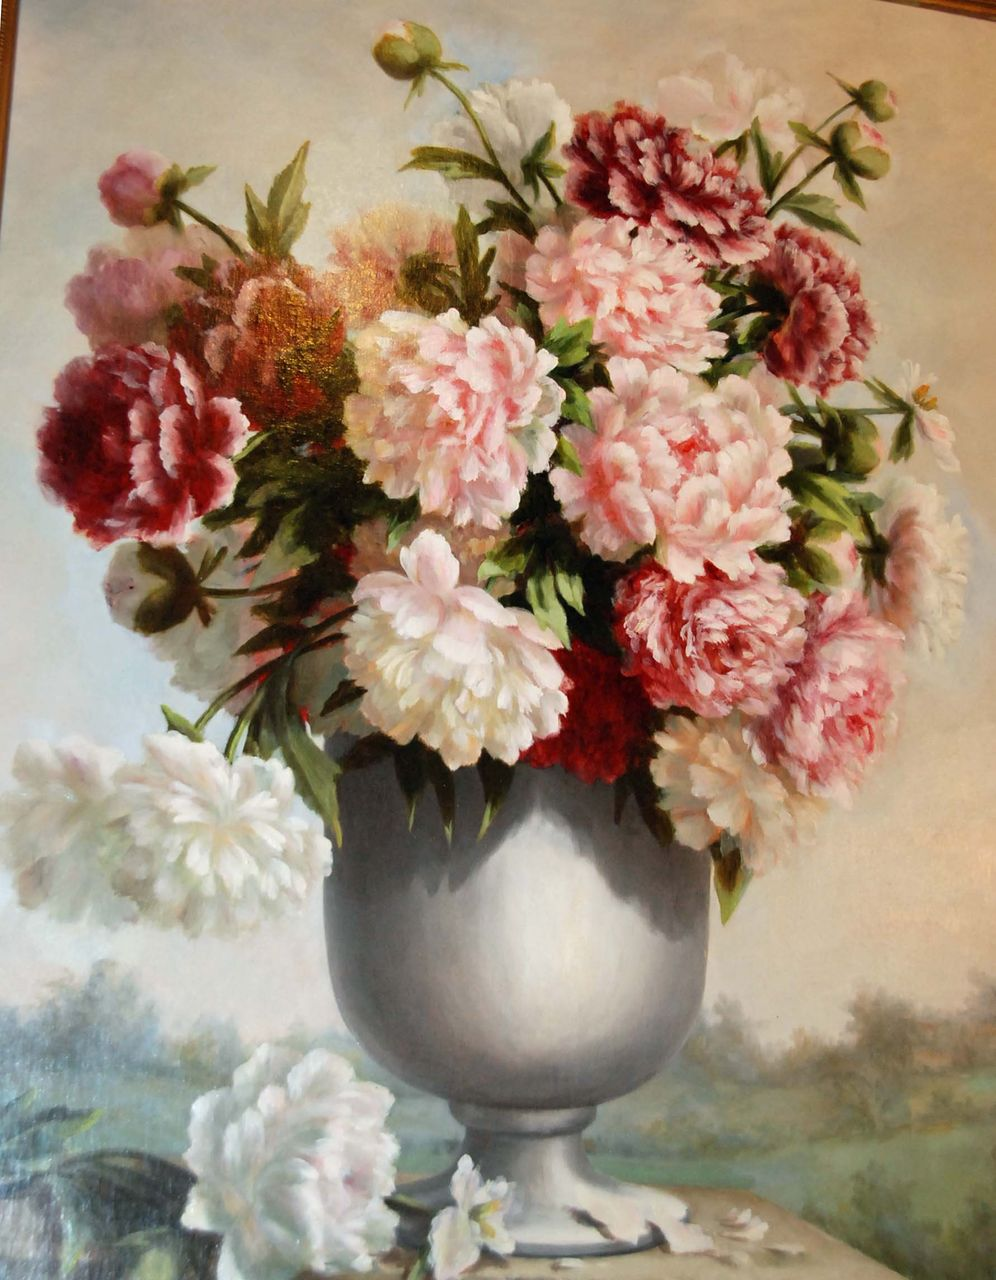 Stunning &quot;Urn with Flowers&quot;